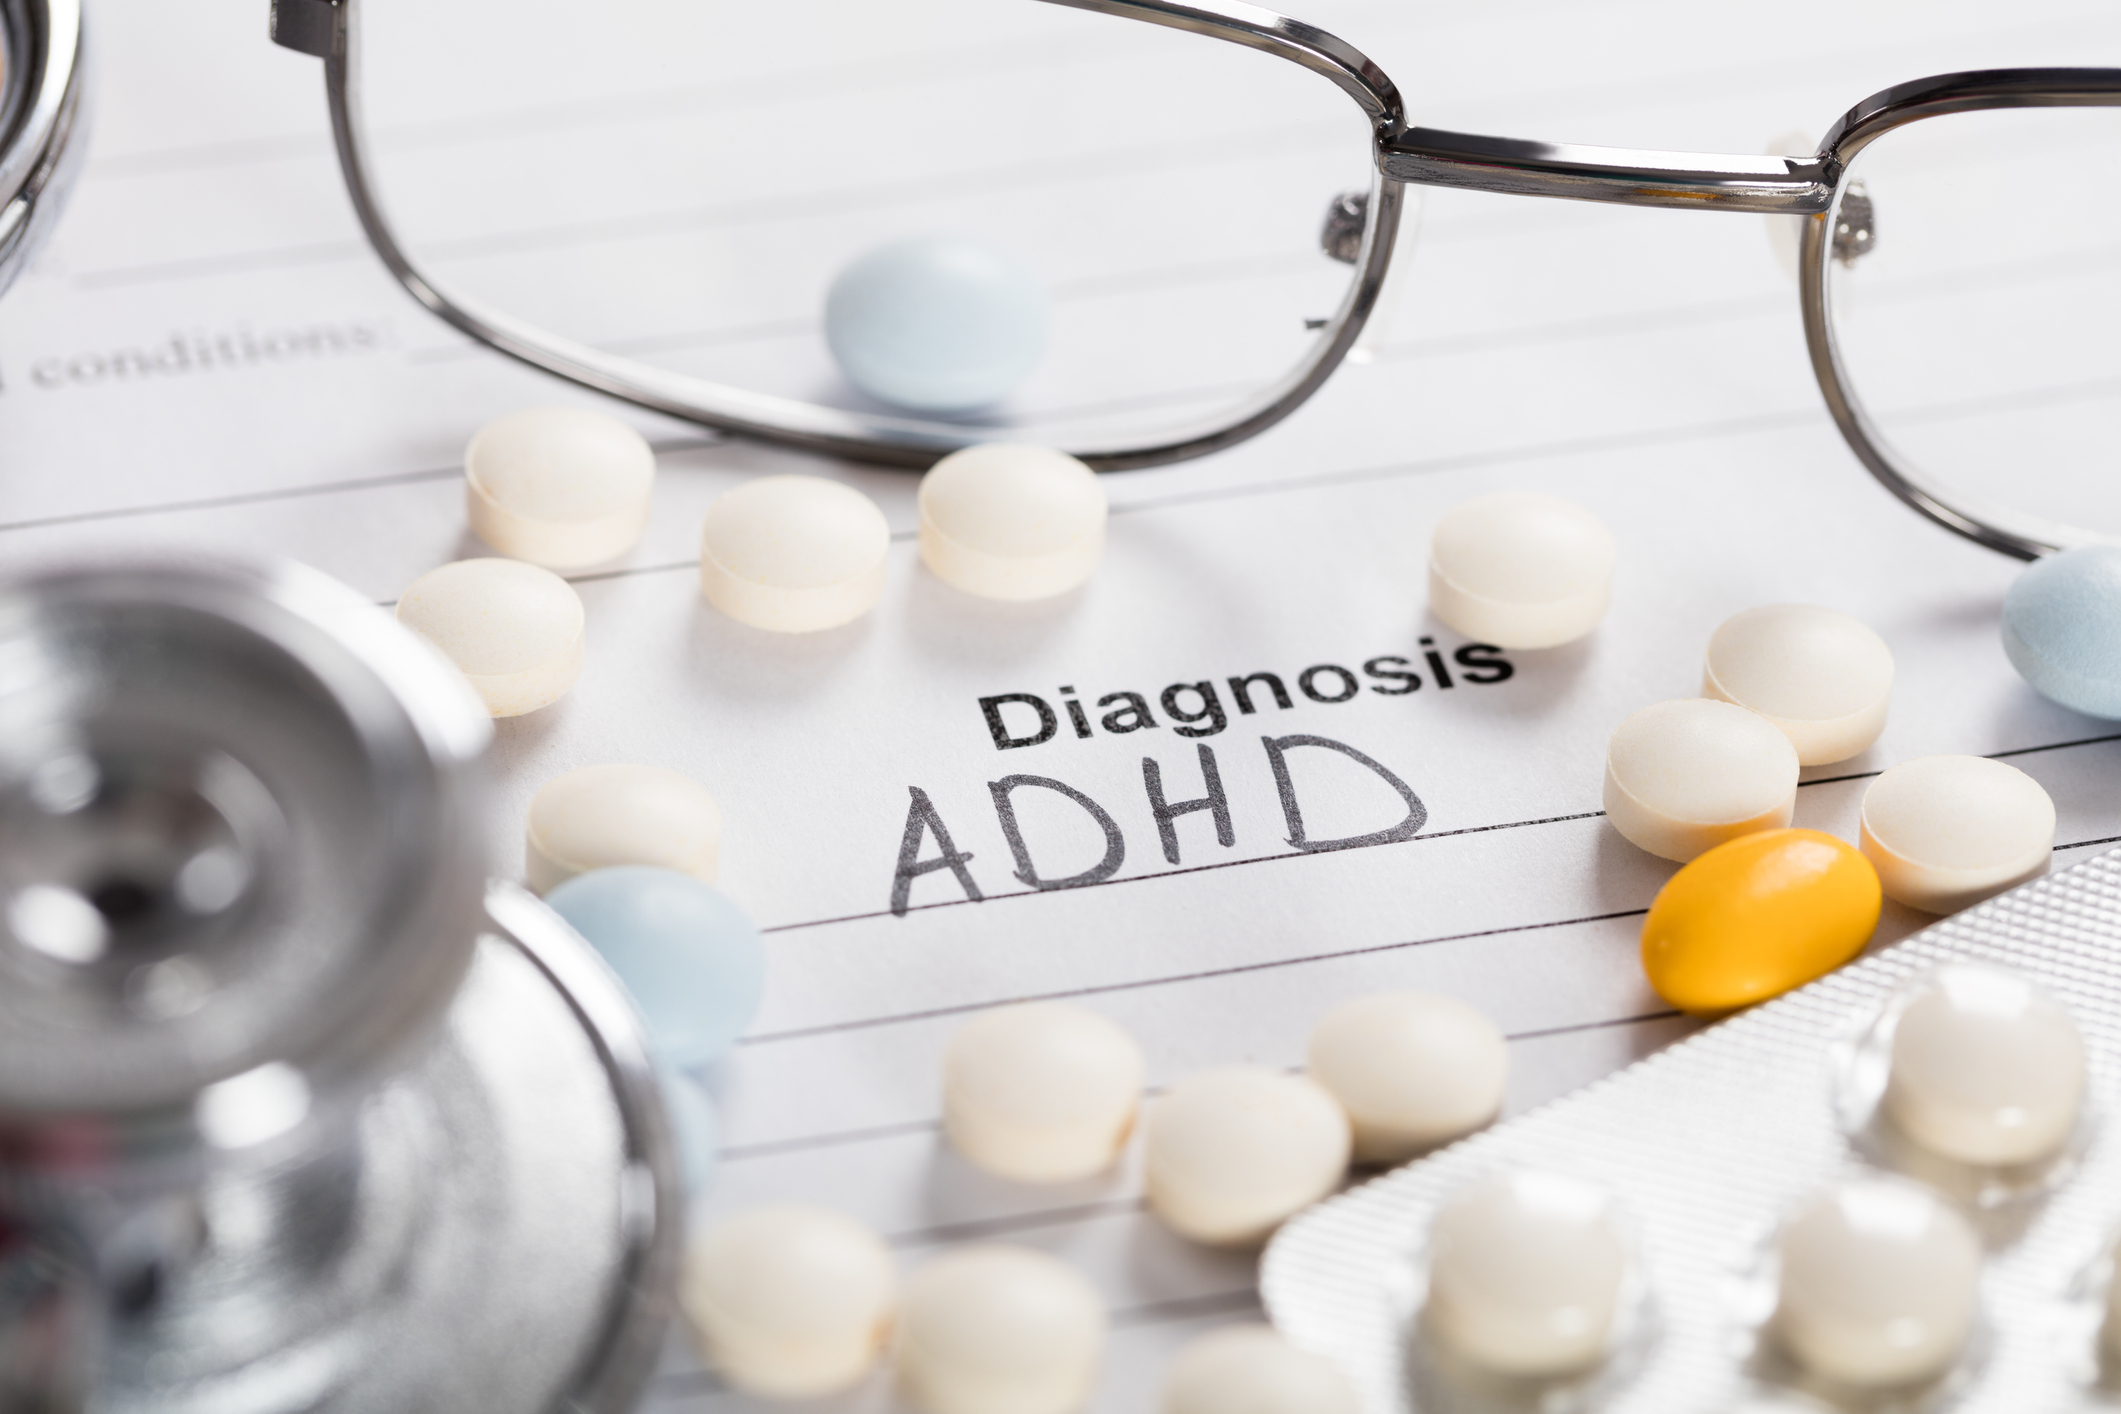 ADHD Treatment Options